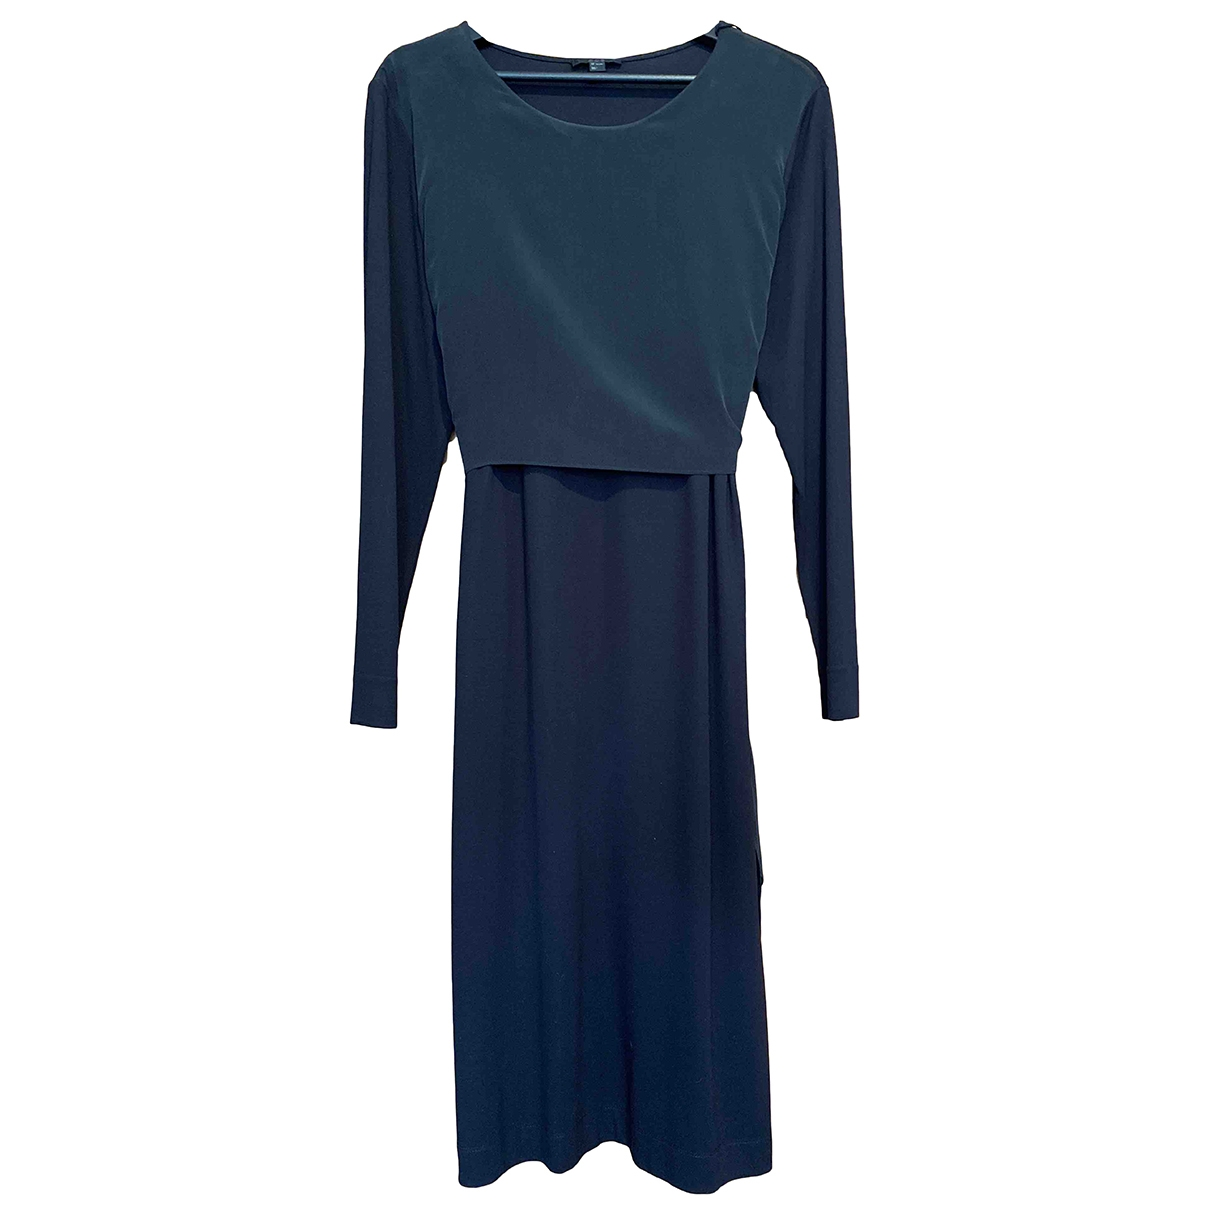 Cos \N Grey dress for Women L International